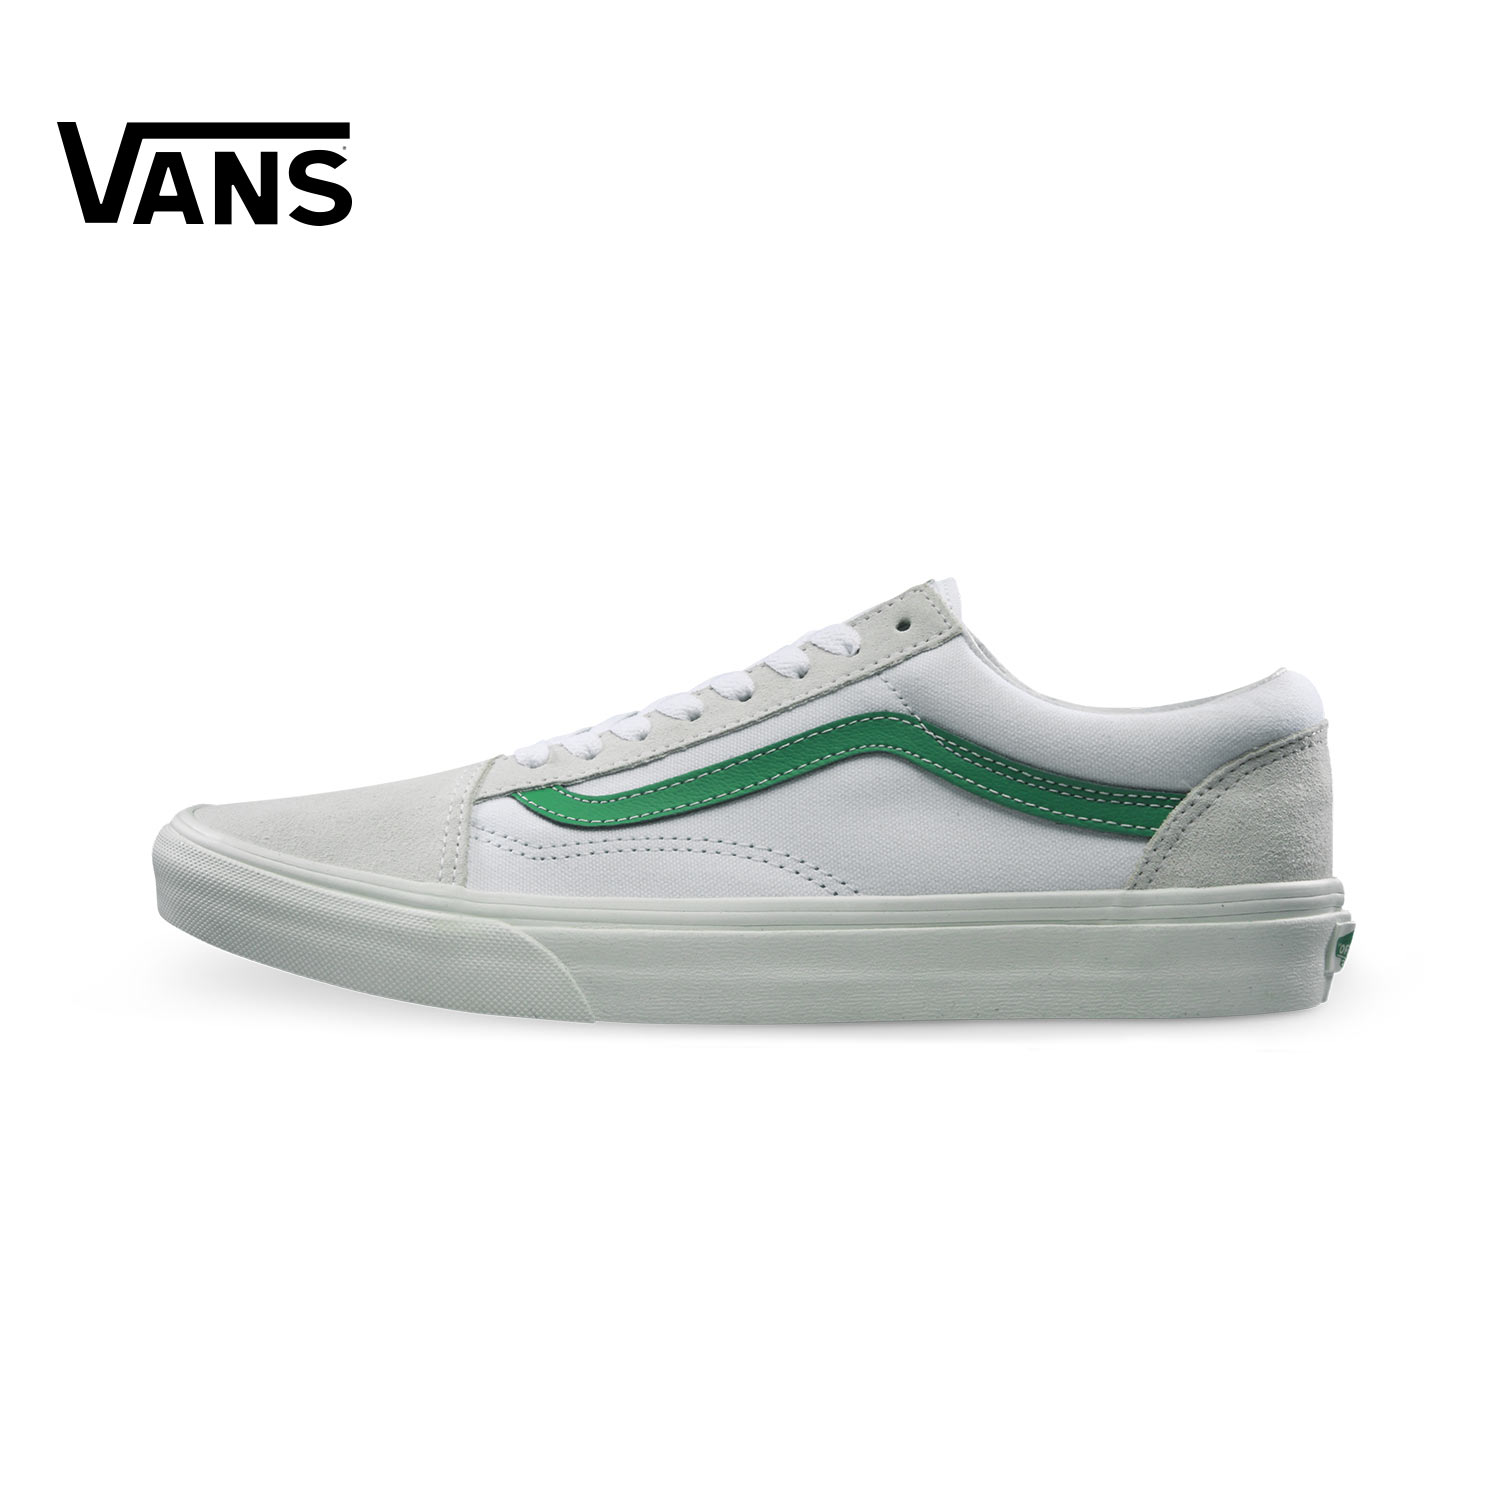 Vans Old Skool White Green Sneakers Low-top Trainers Men Sports Skateboarding Shoes Rubber Classic Canvas Vans Shoes for Men